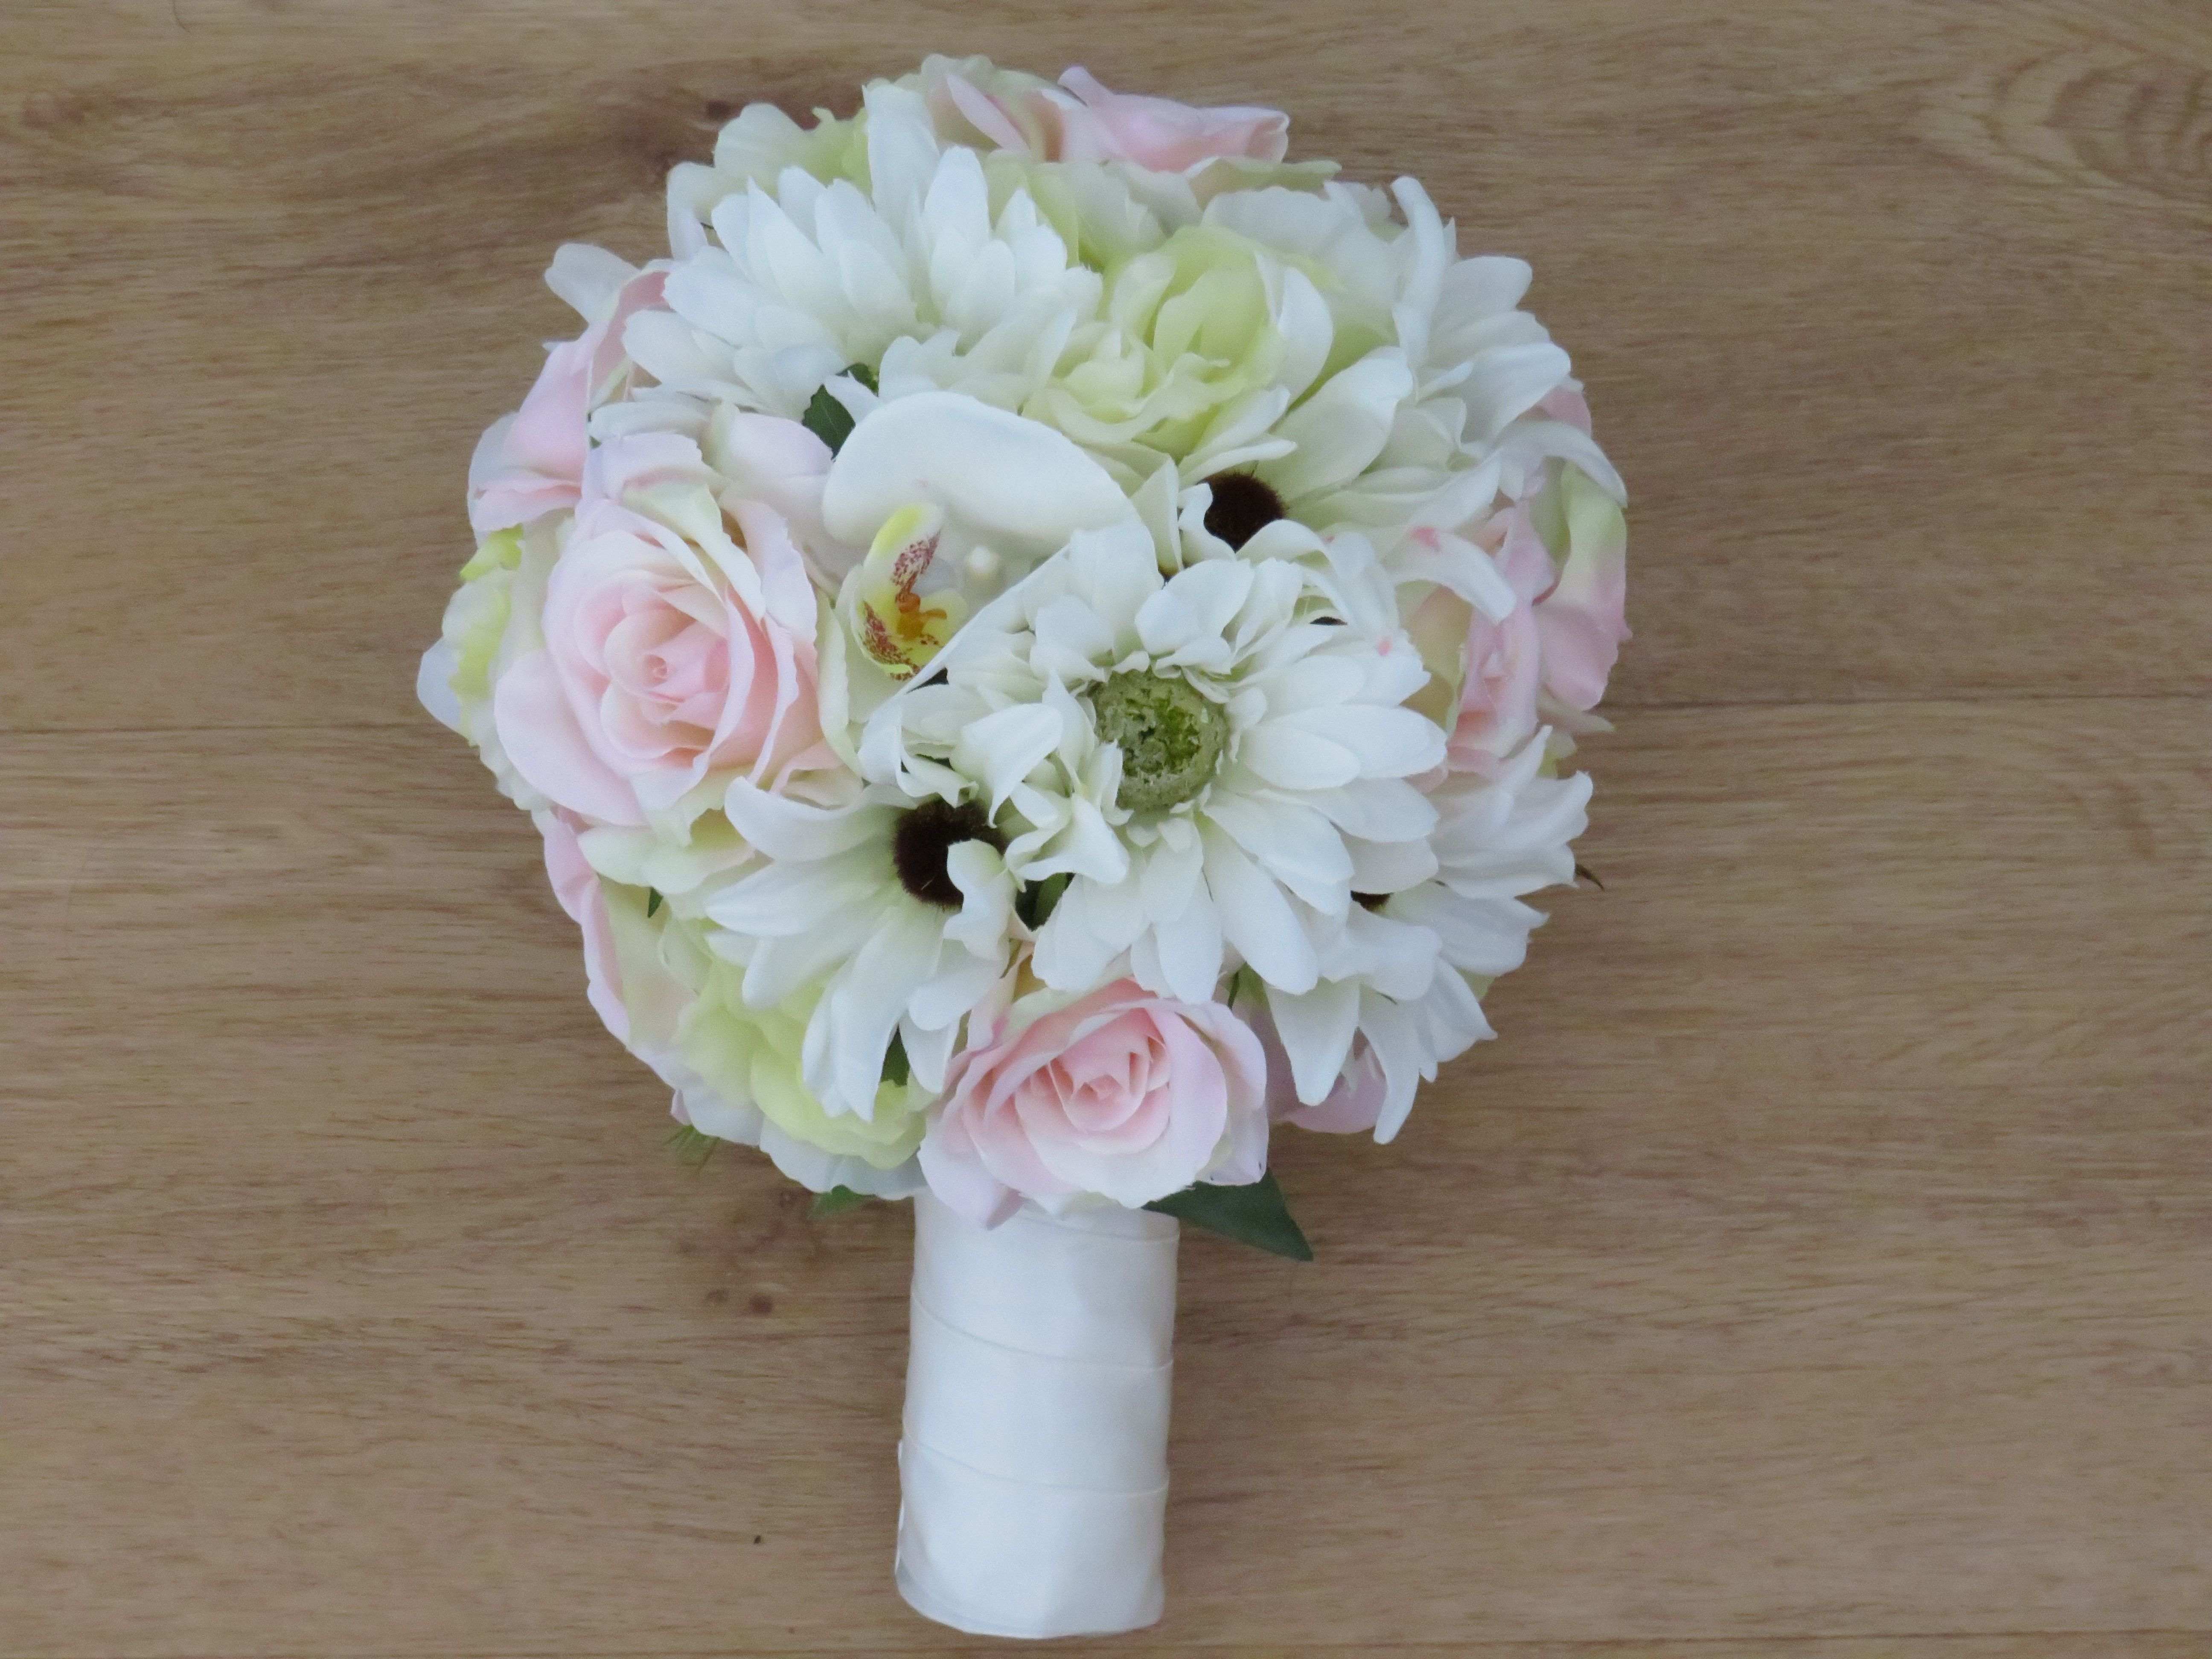 A Country Gardenboho Style Wedding Bouquet With A White Satin Wrap